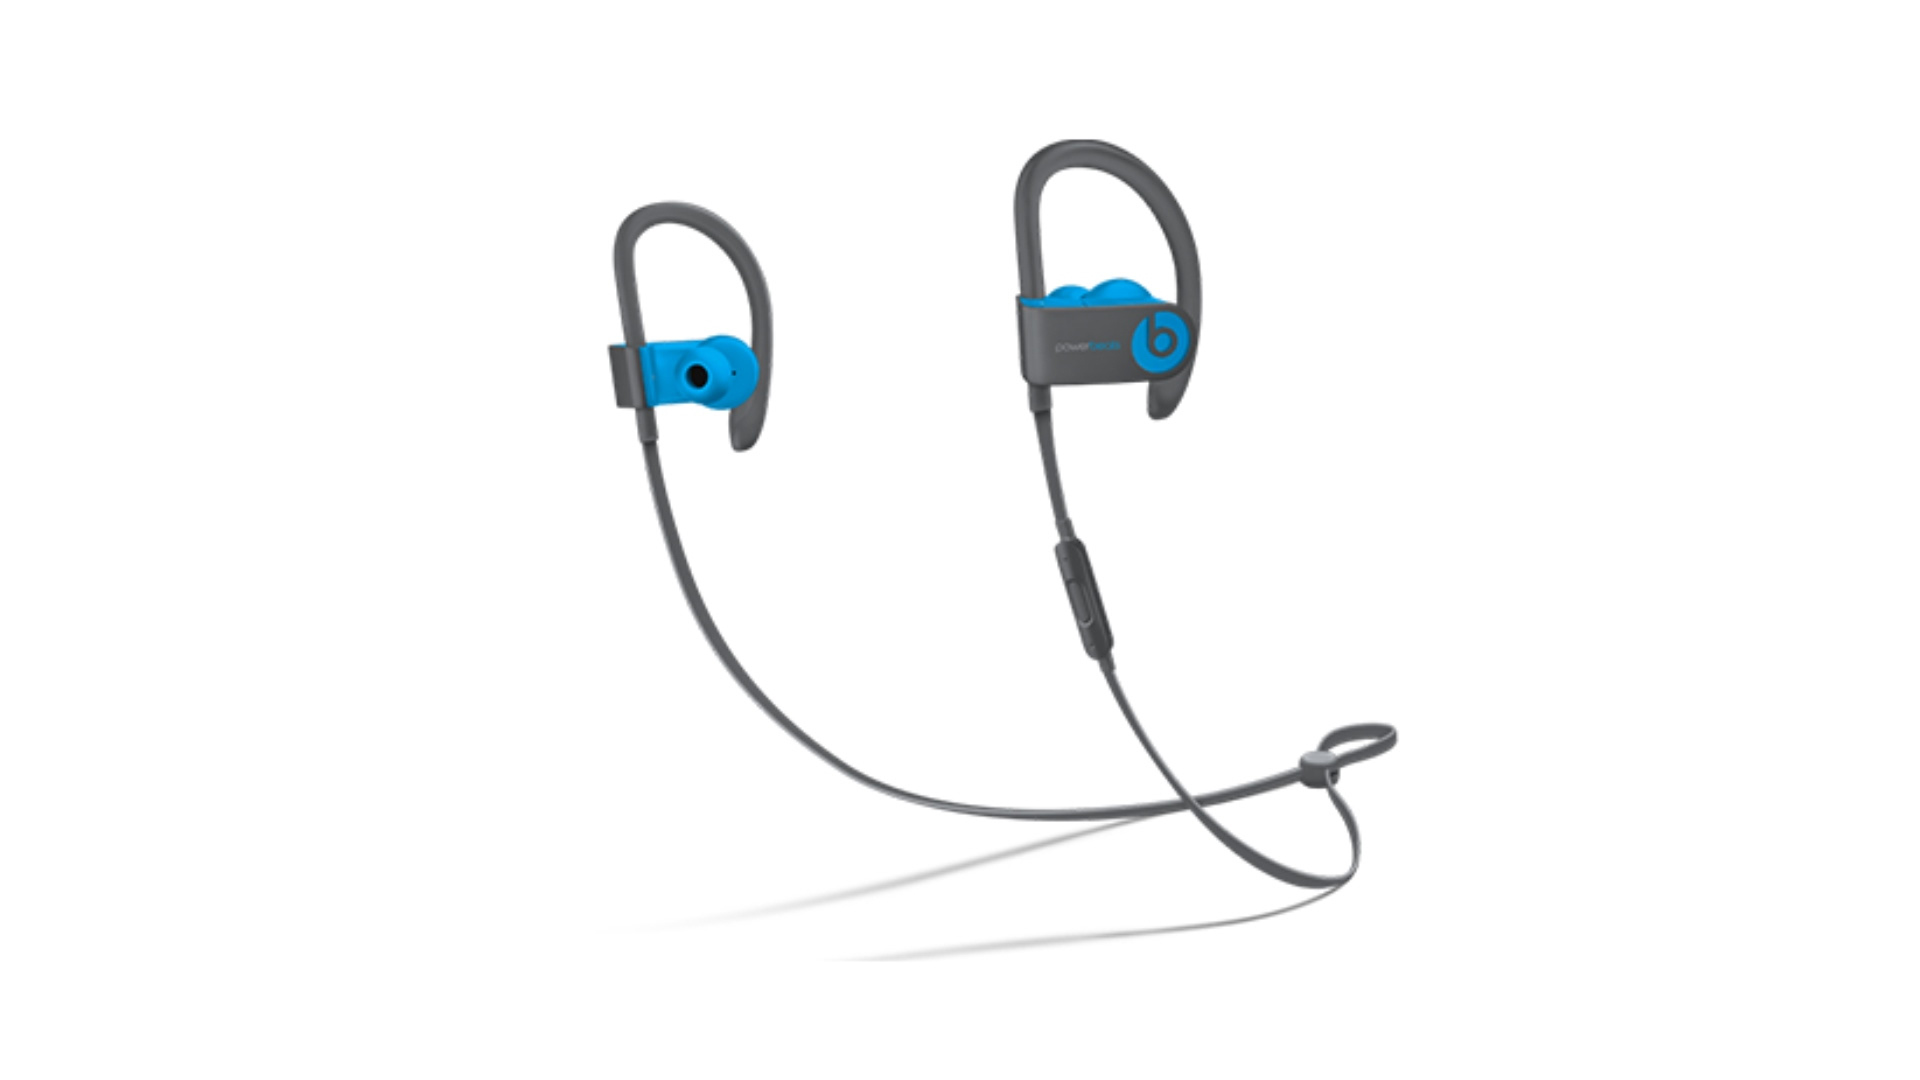 cheapest Beats by Dre Powerbeats3 Wireless headphone prices